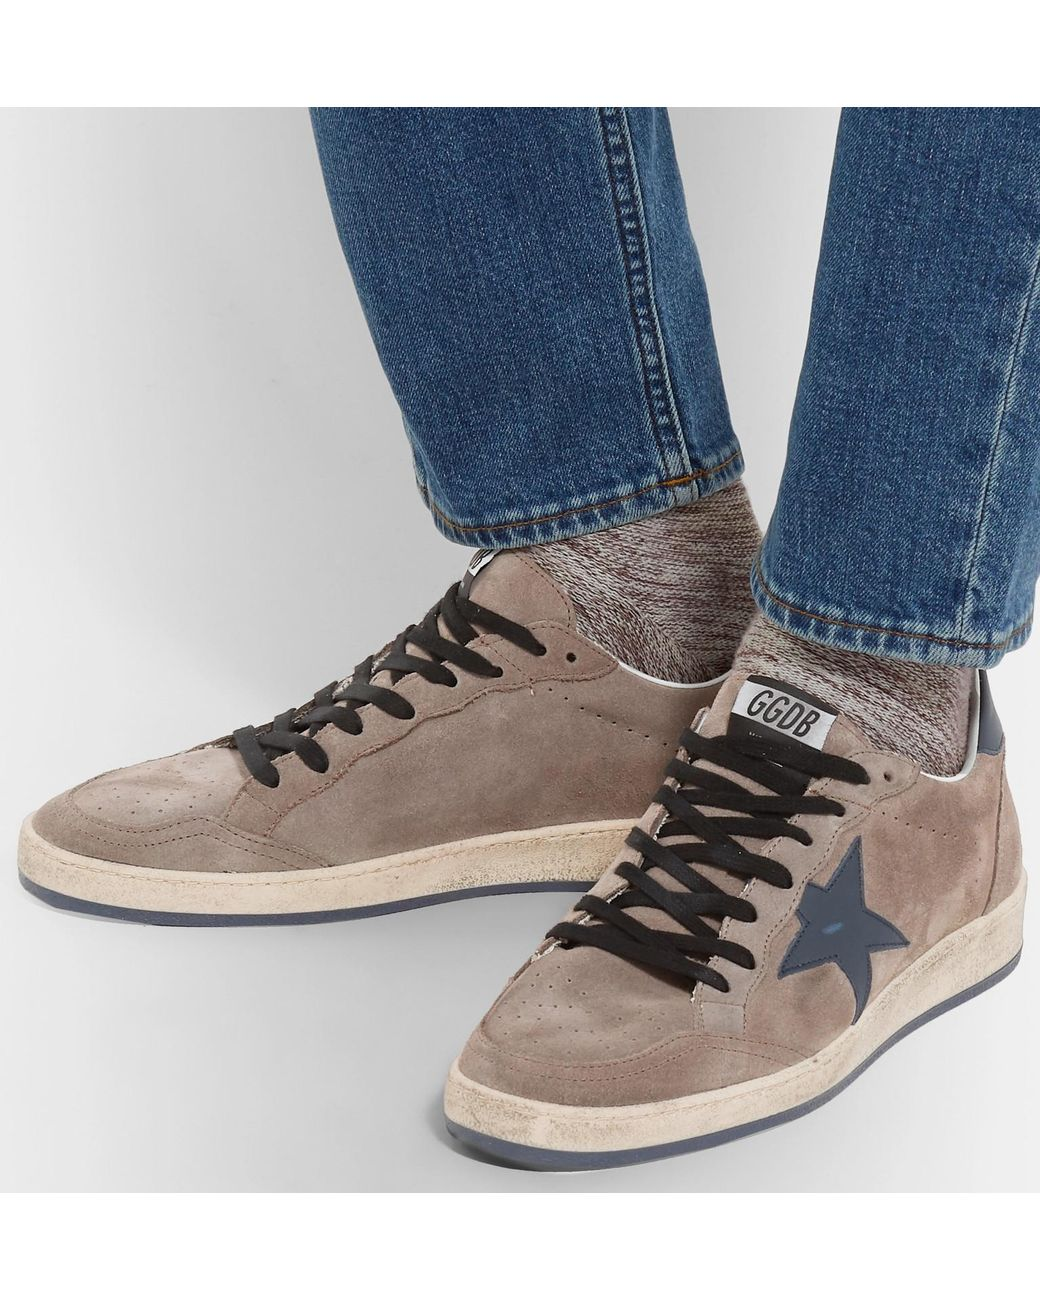 Brown Ball Star Distressed Suede